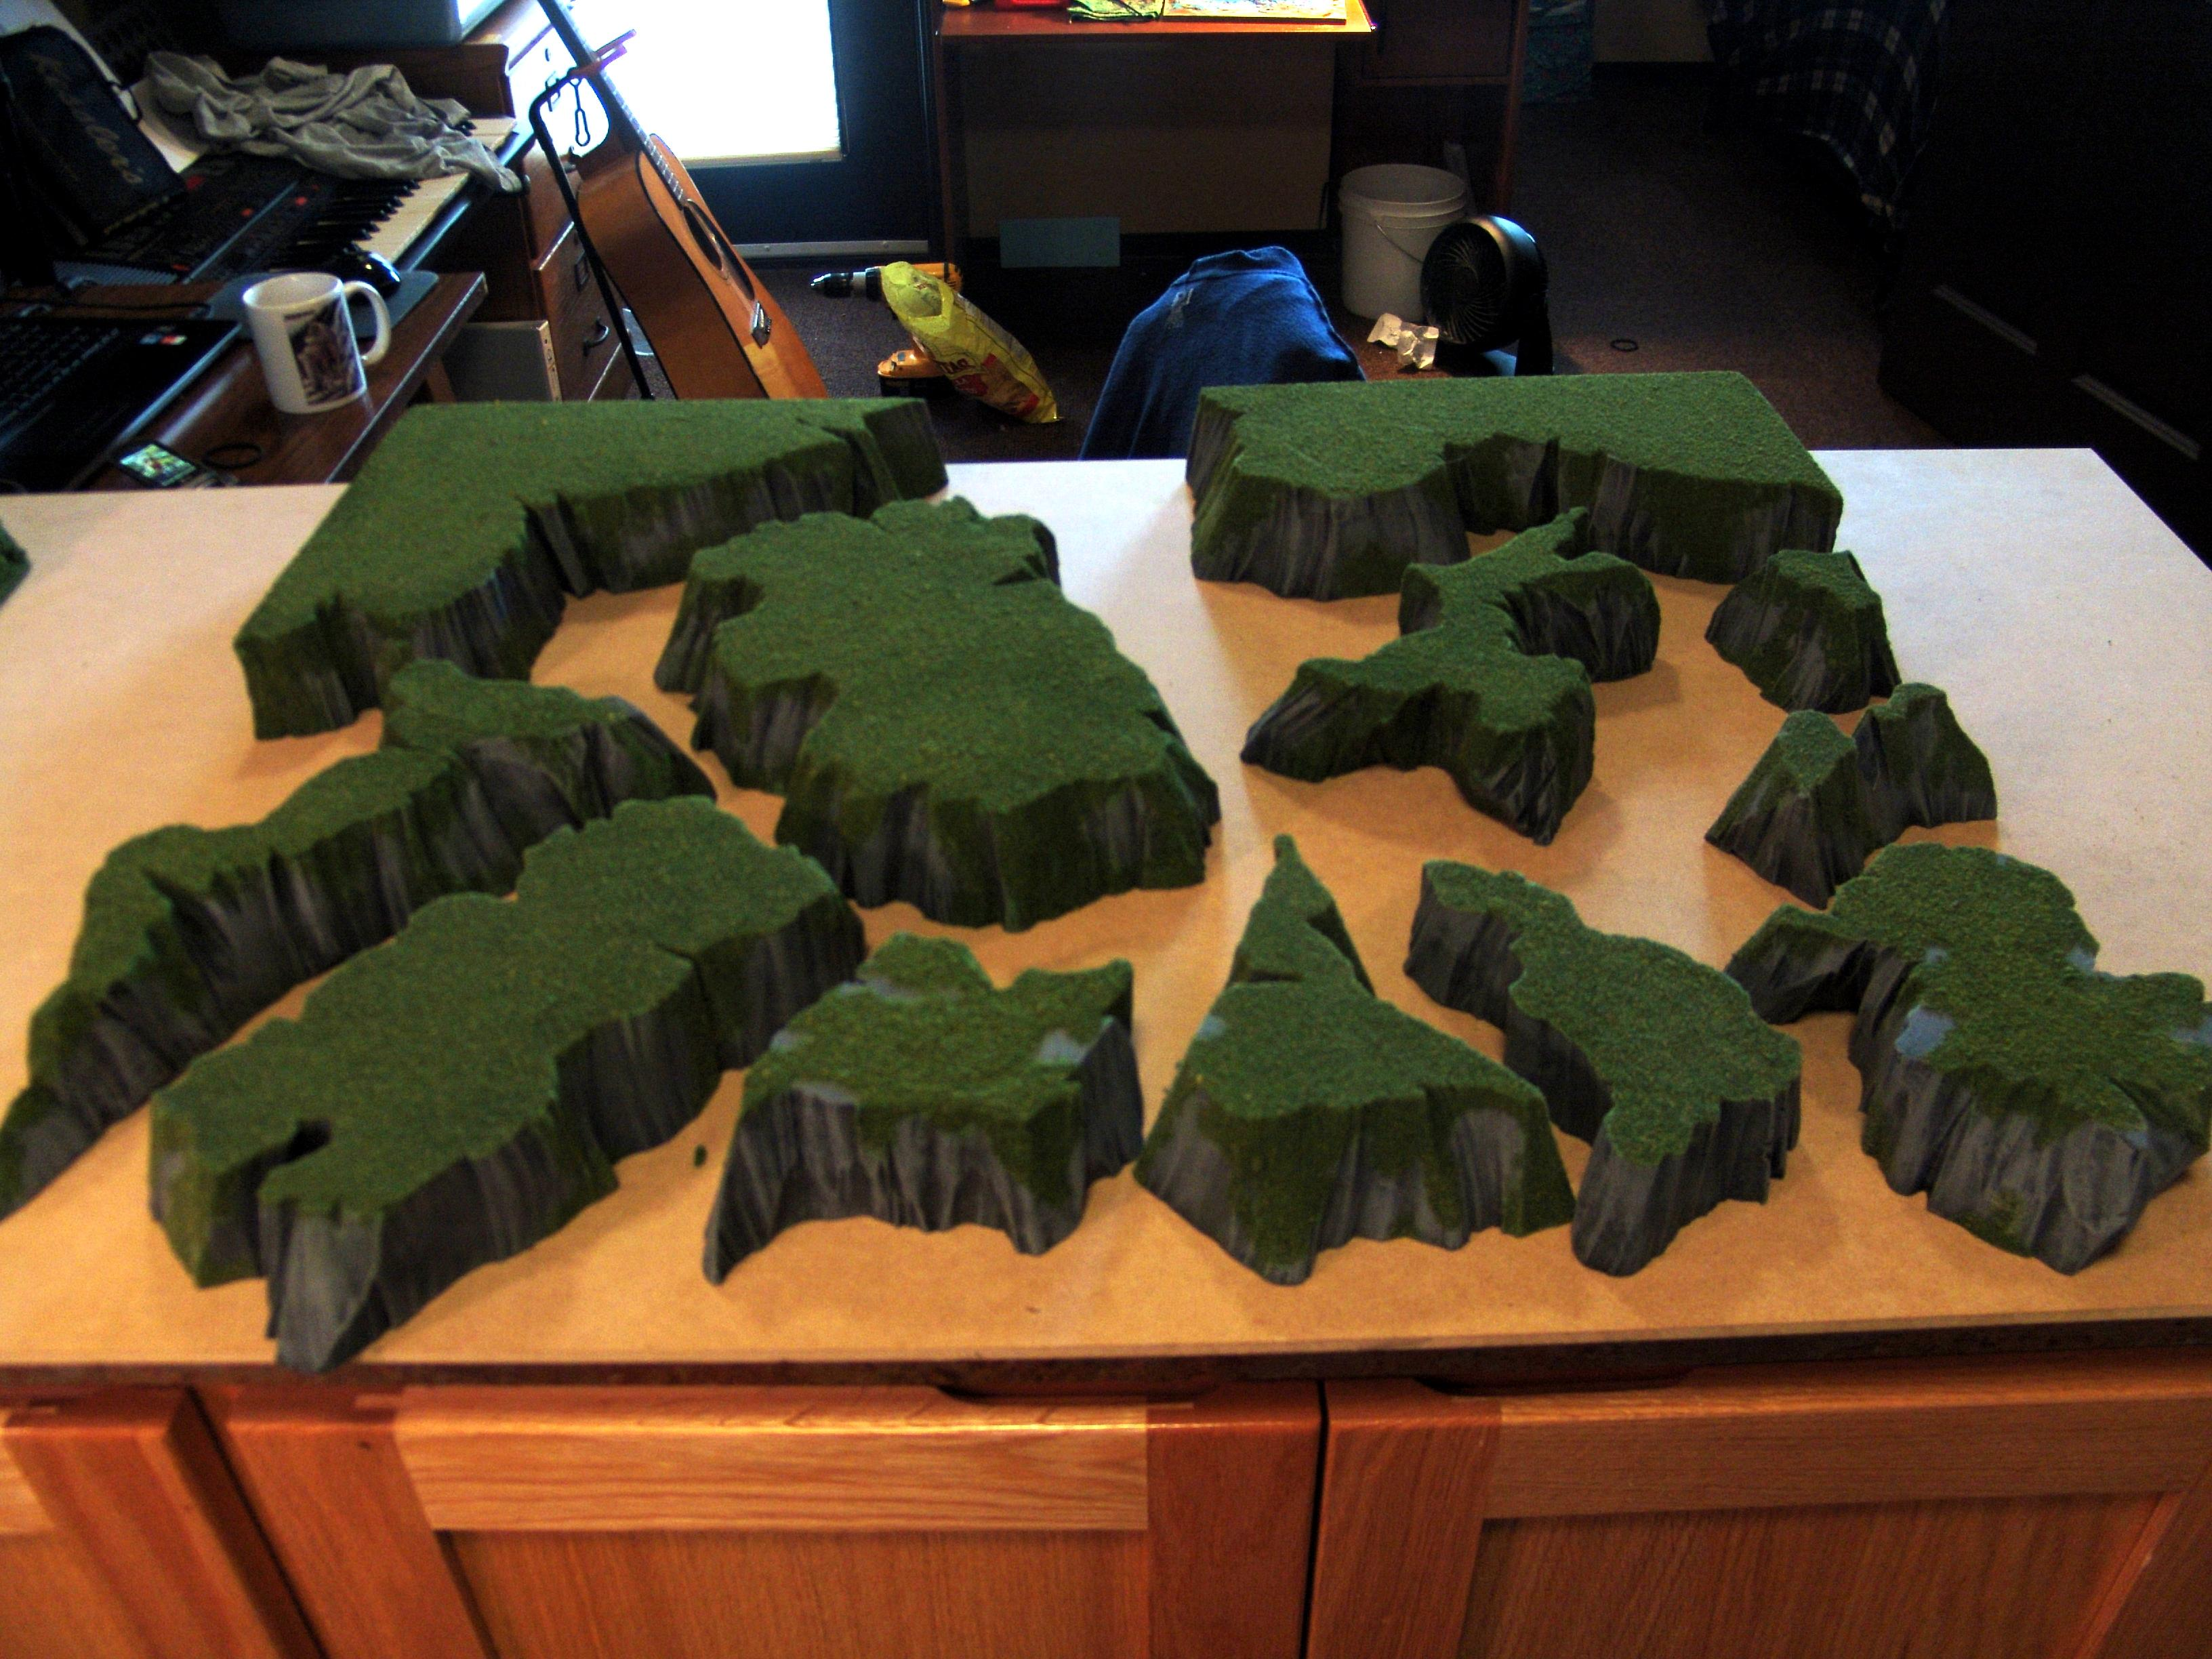 Cliffs, Custom, Drybrushing, Flock, Grass, Hills, Pink Foam, Rocky, Stratchbuilt, Terrain